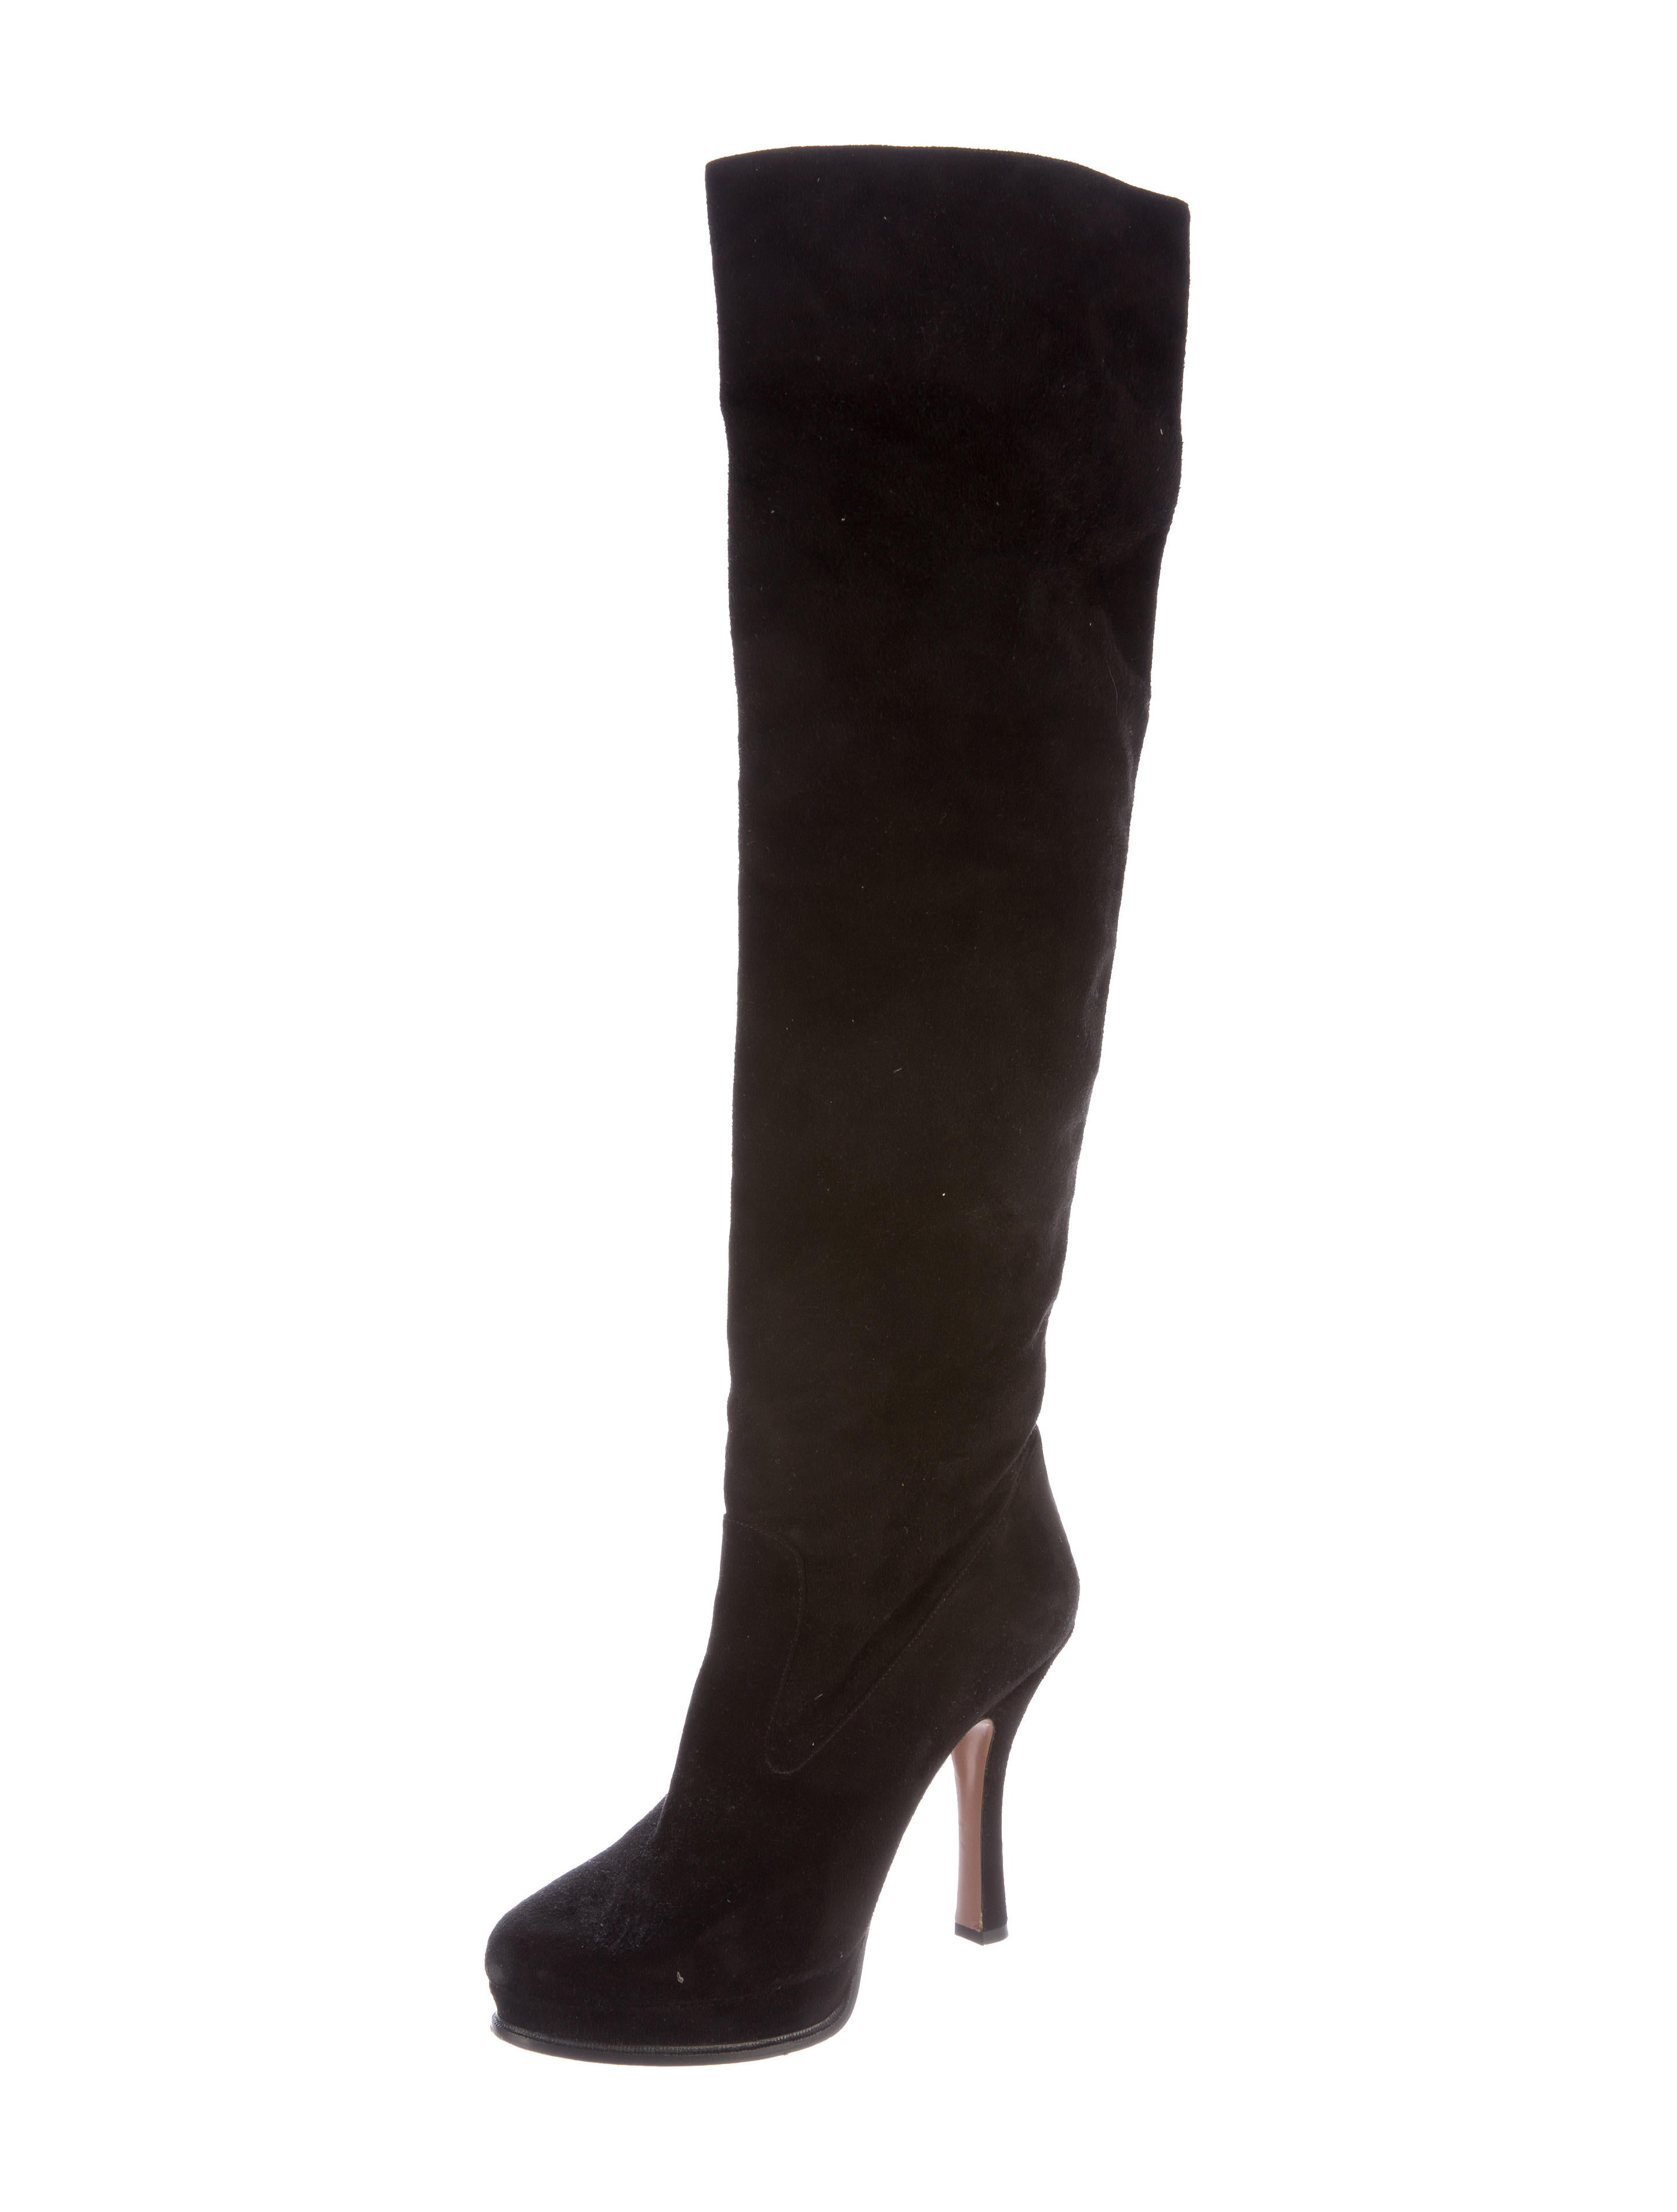 prada suede knee high boots shoes pra140417 the realreal